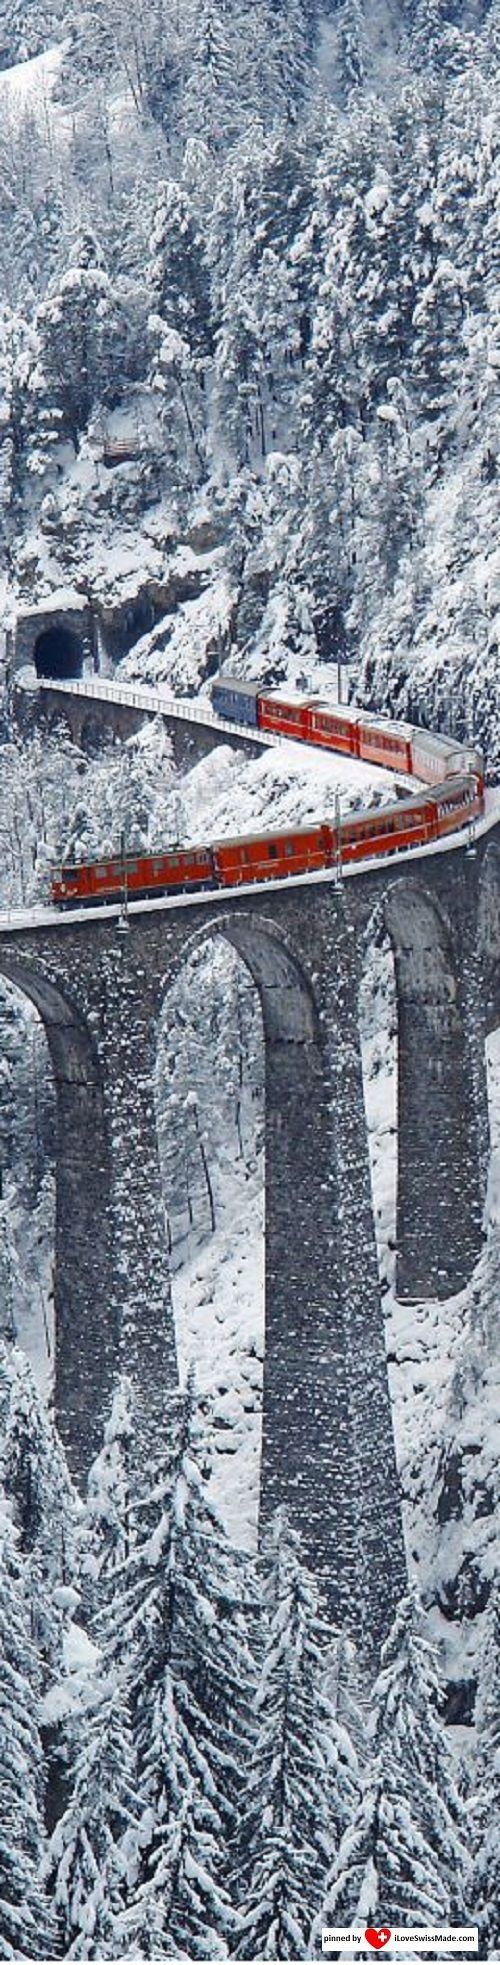 ✔ Landwasser Viaduct Switzerland to Italy. The Bernina Express is a brightly colored scarlet train that crosses the Alps beginning in the town of Chur and ends in Tirano, just across the border in northern Italy. #PANDORATexas